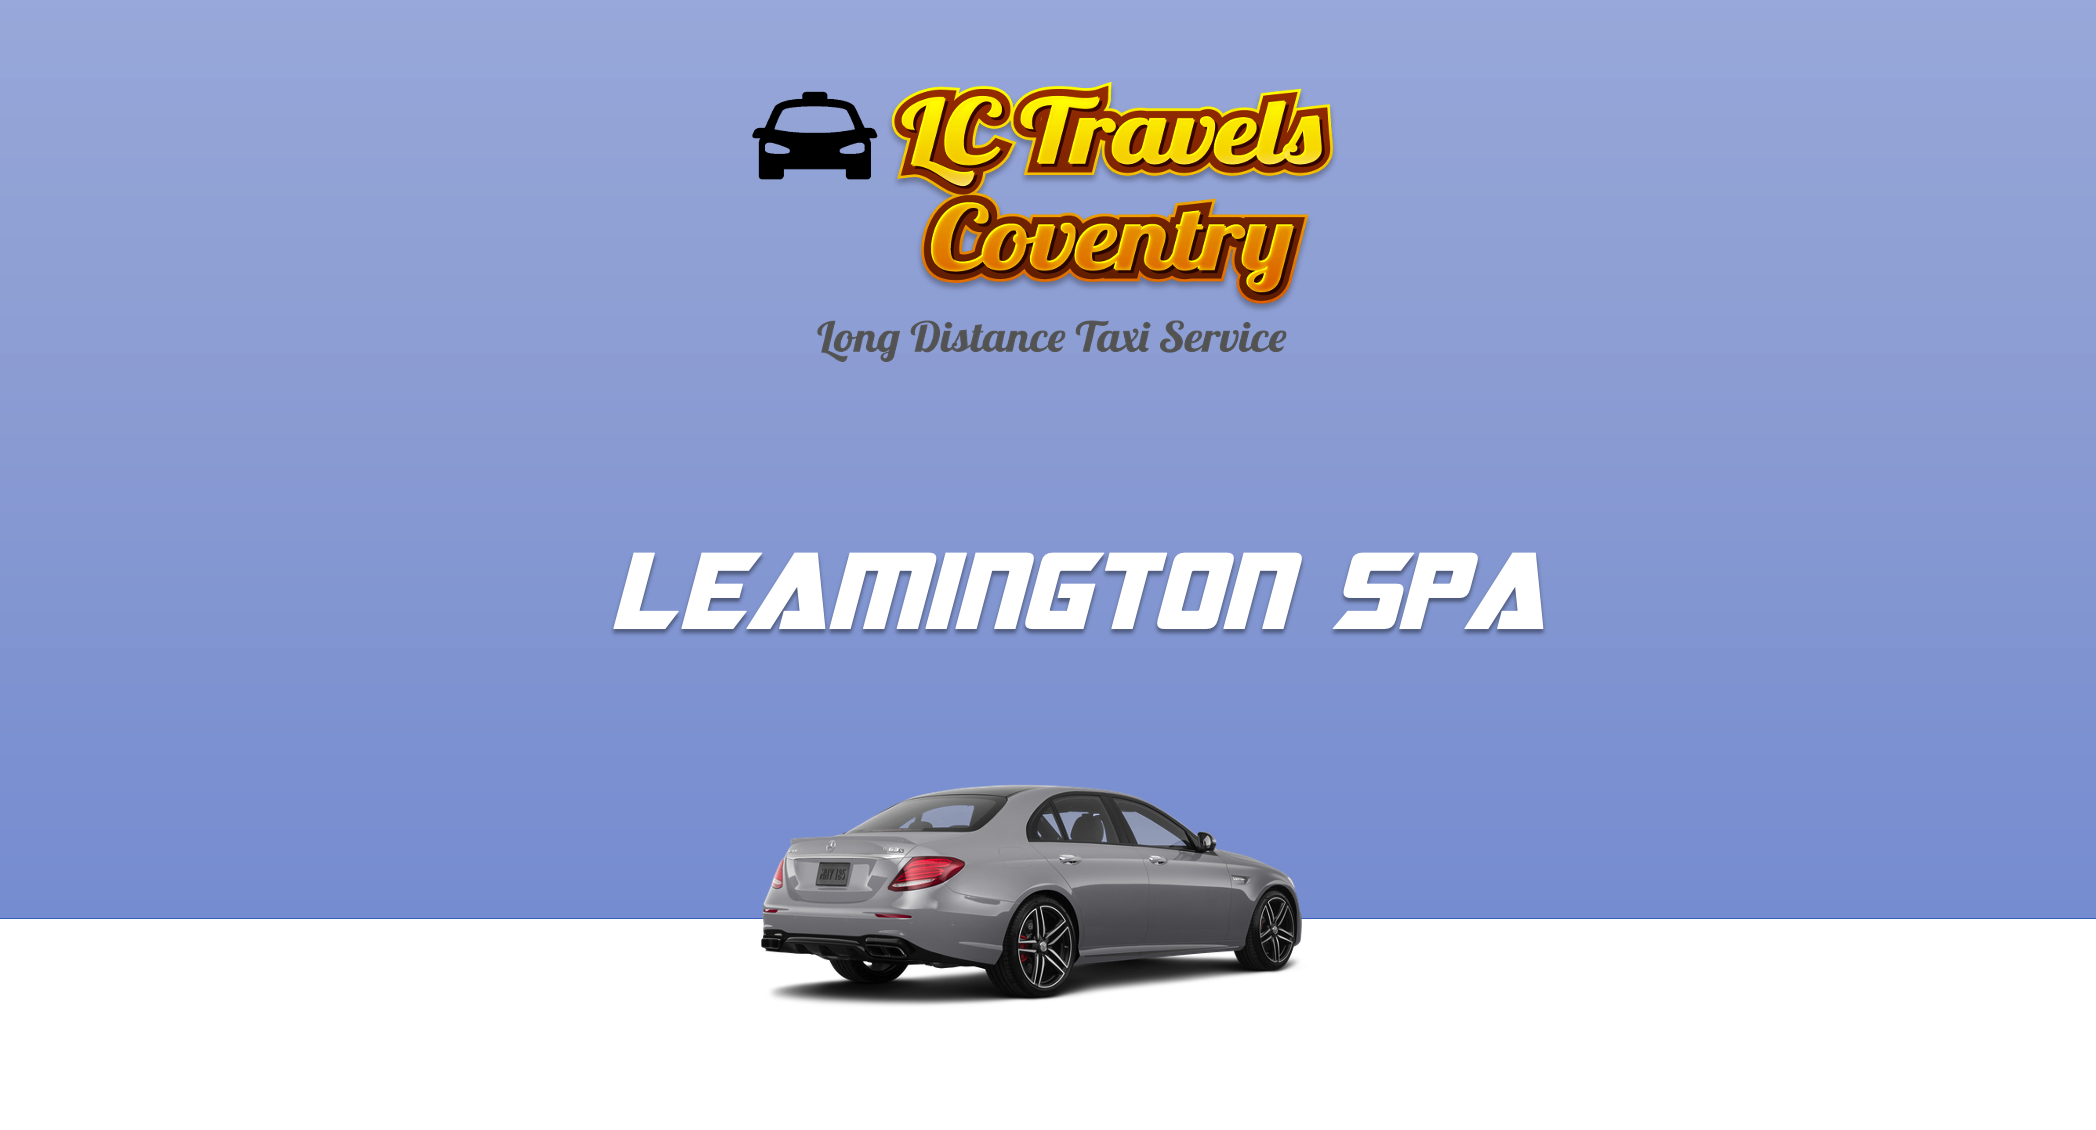 Taxi from Coventry to Leamington Spa